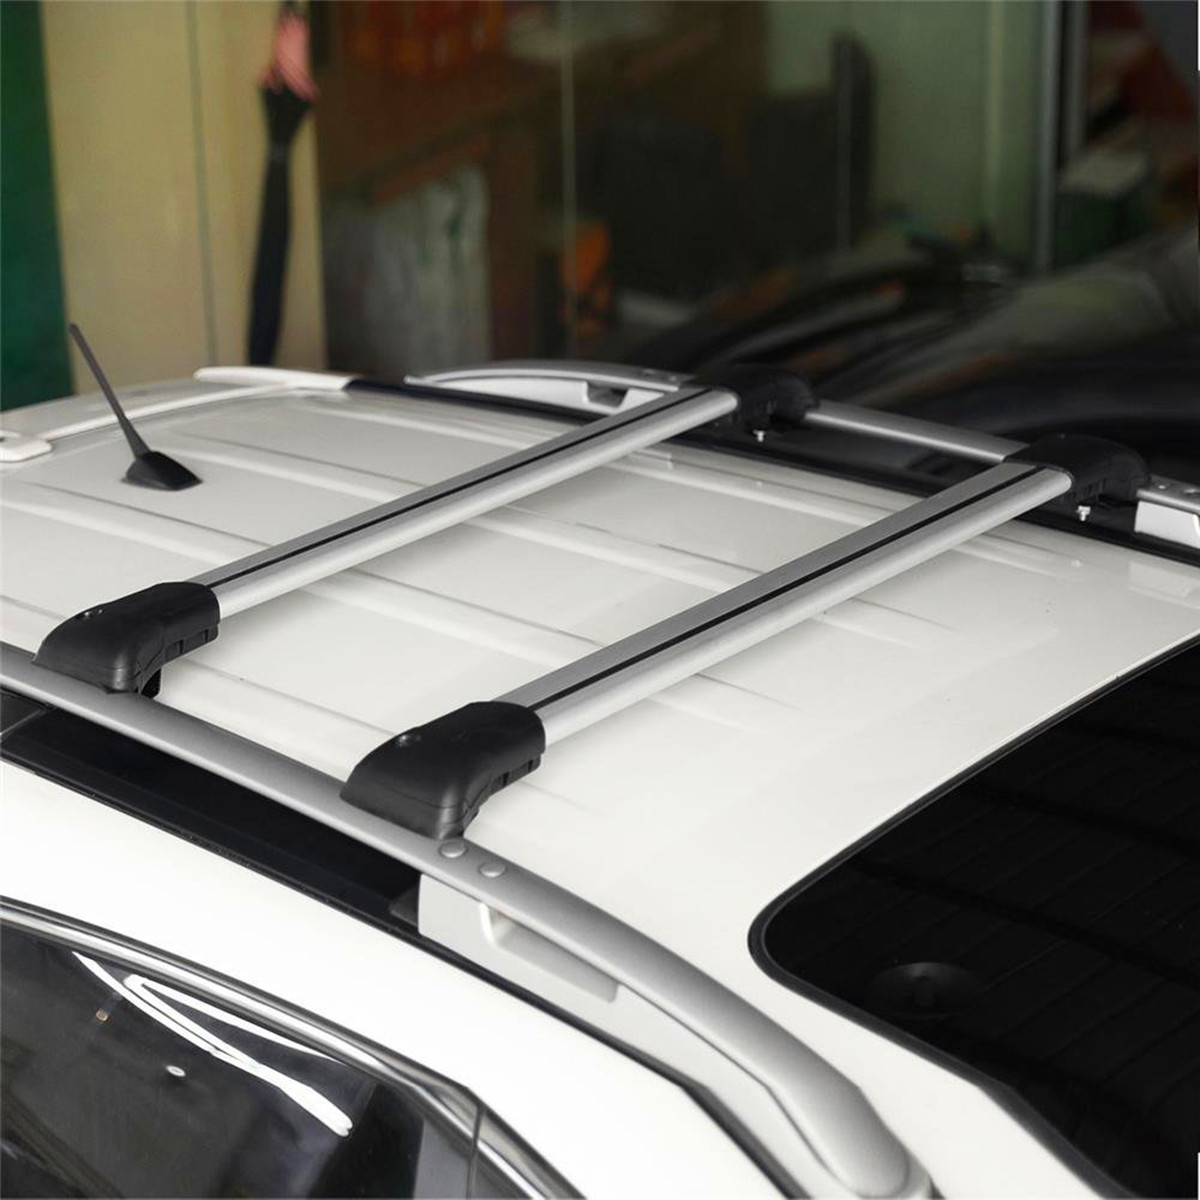 2Pcs 93-99cm Car Top Rail Roof Rack Cross Bar Luggage Carrier for Raised Rail Universal